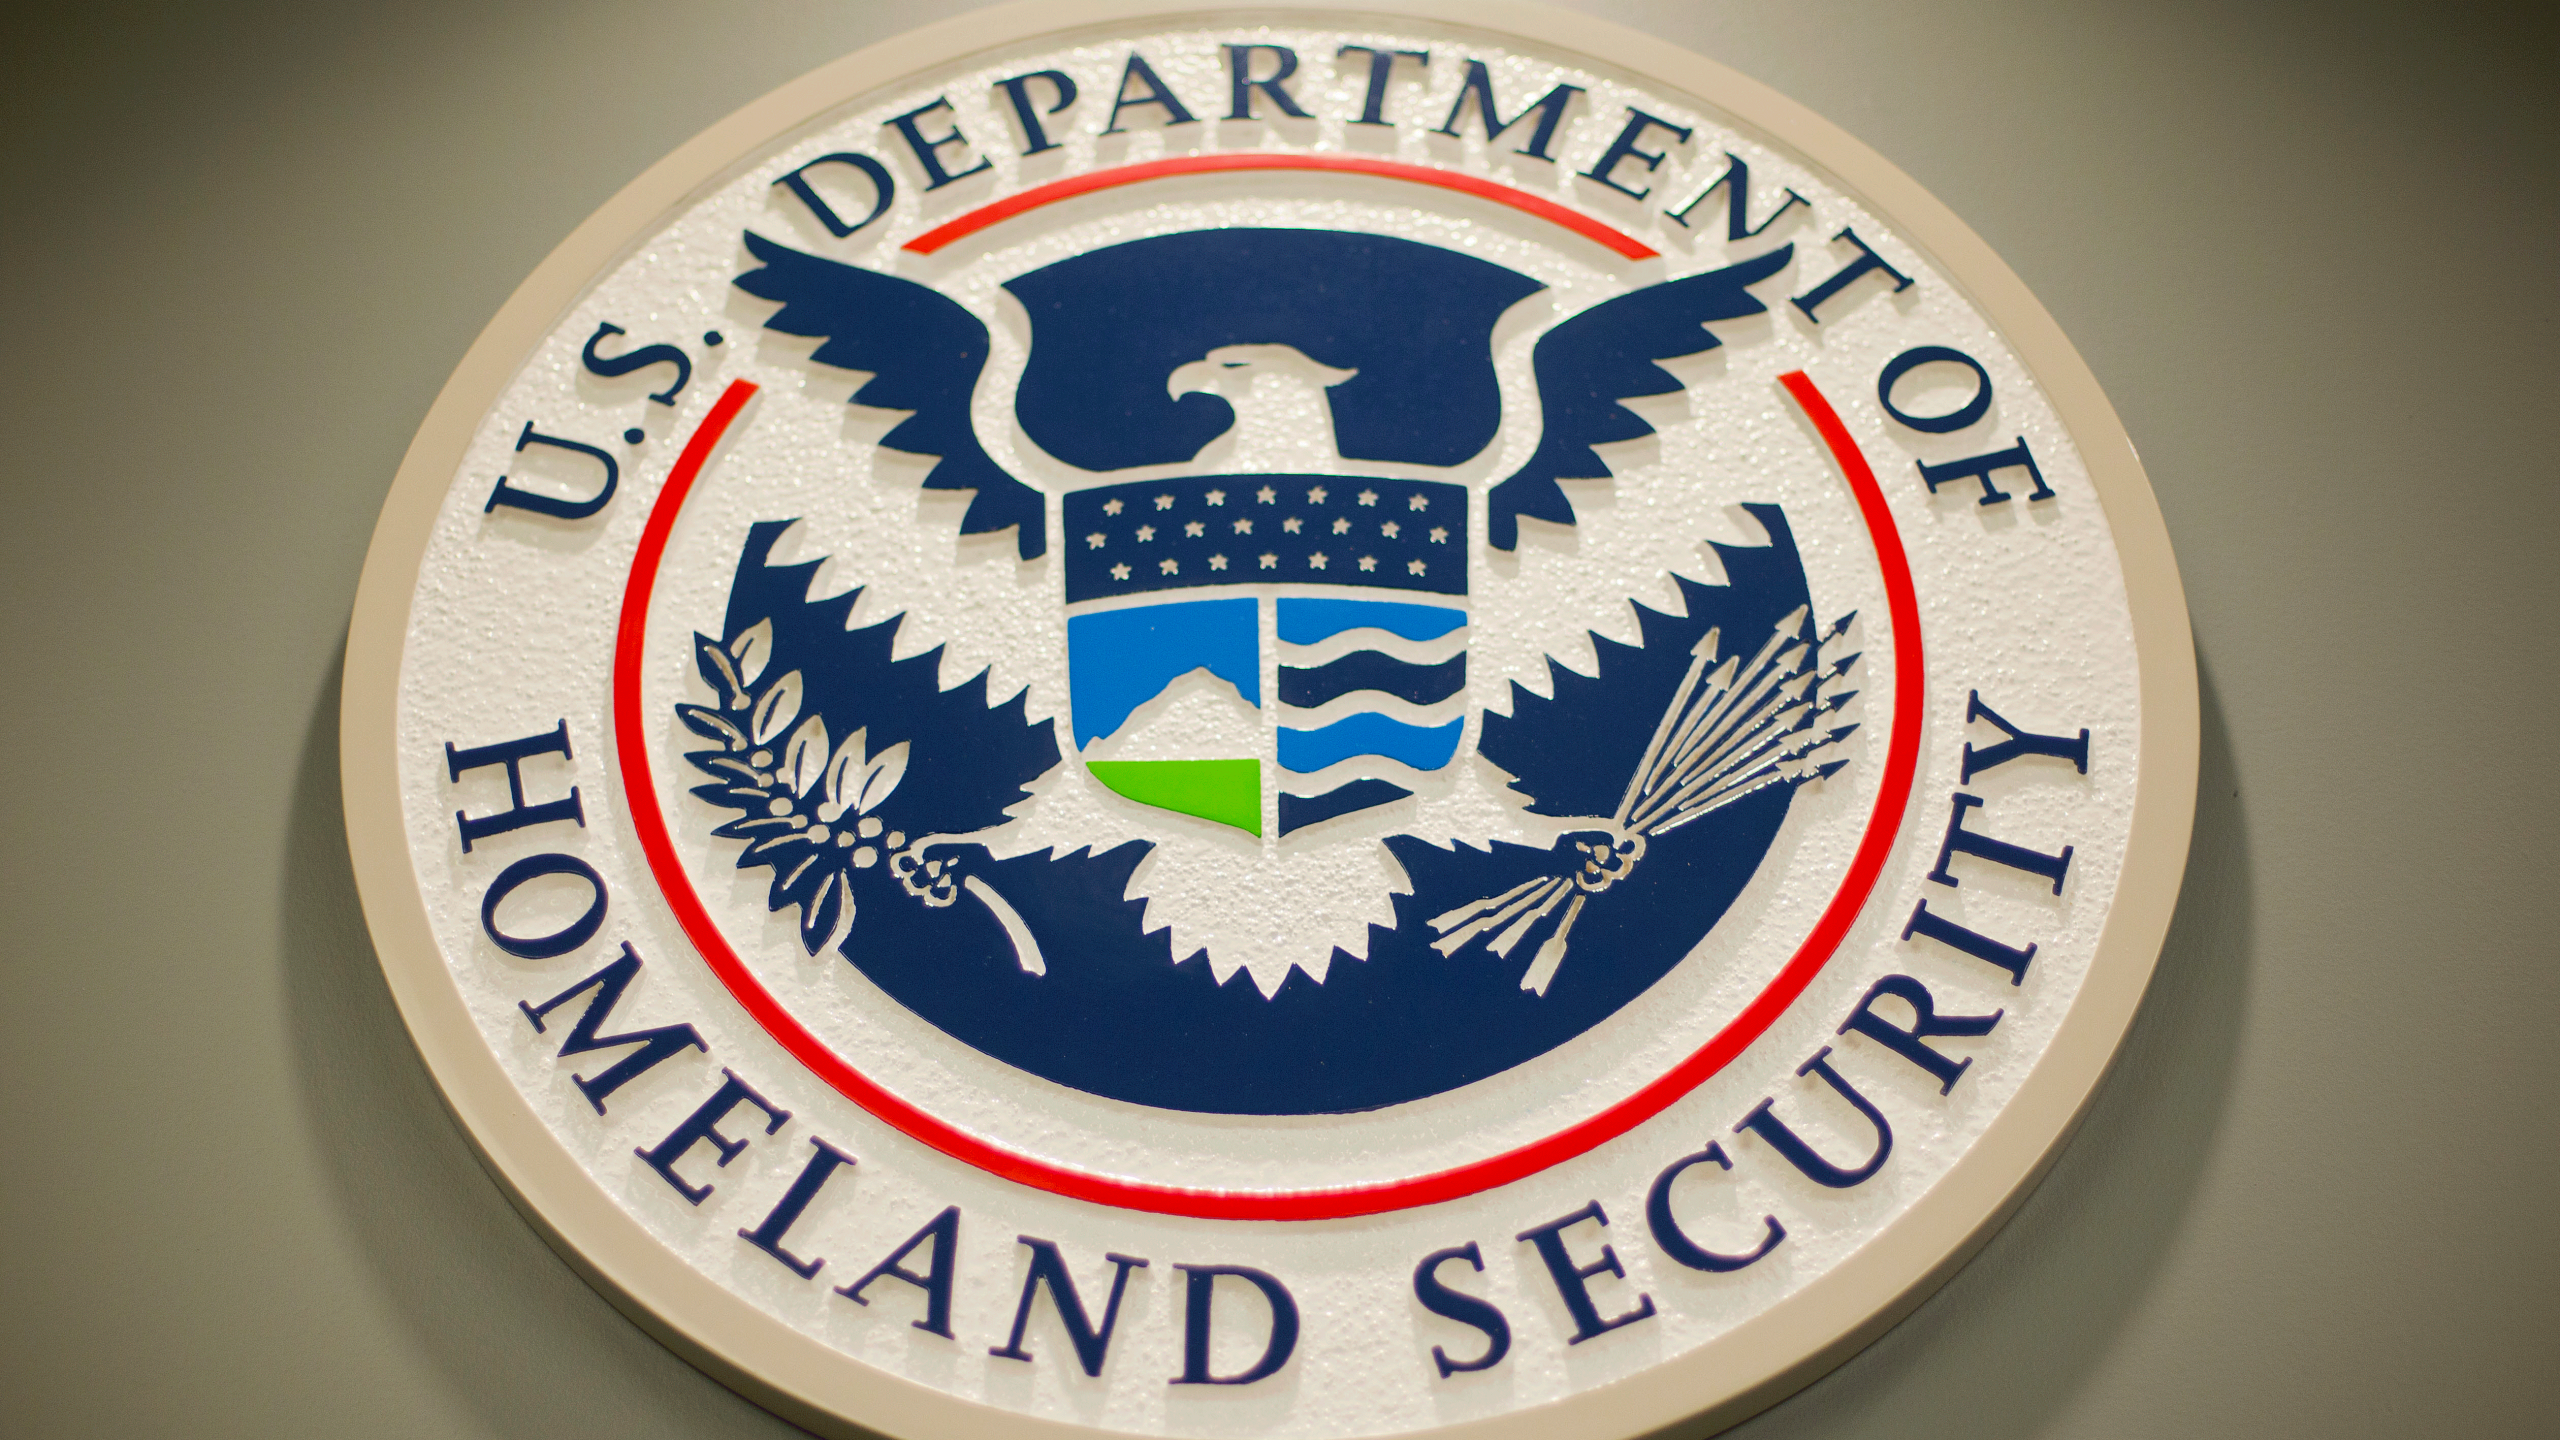 Homeland-Security-logo_1556060721653.png